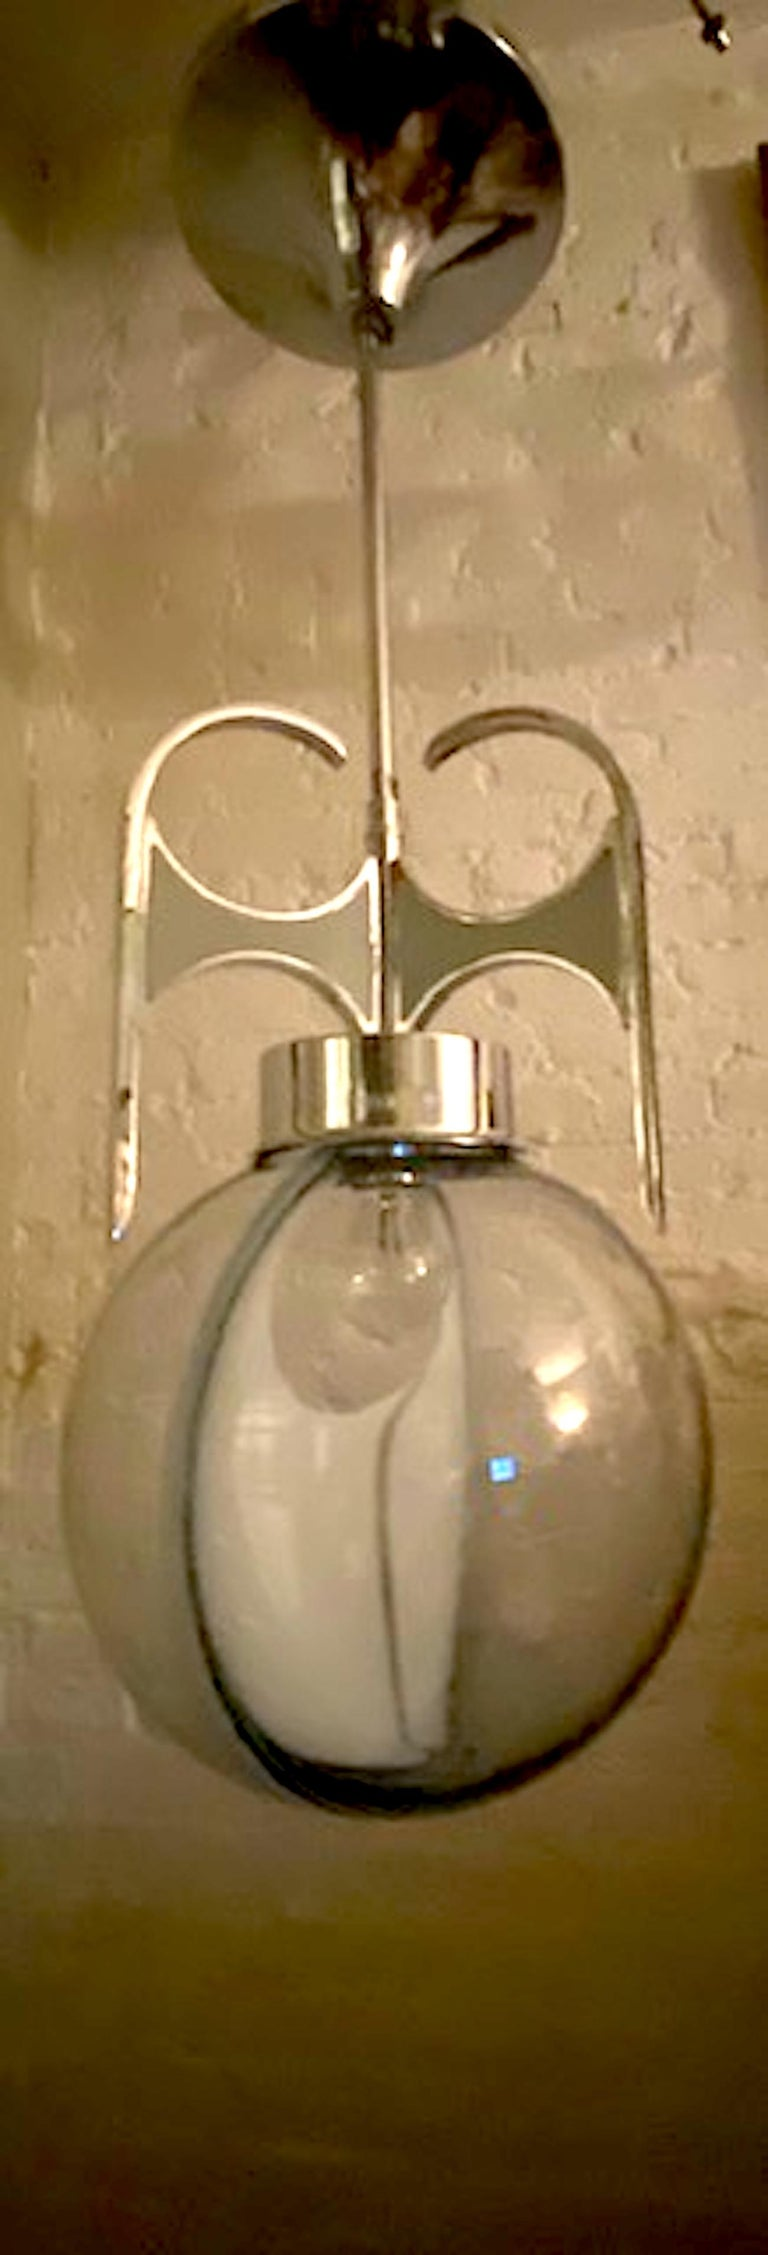 A wonderfully sculptural Italian pendant light from the 1970s in the style of the Italian lighting company Vistosi. The hand blown glass shade is clear with a light blue/grey tint. It has a decorative white glass crescent shape piece in the middle.